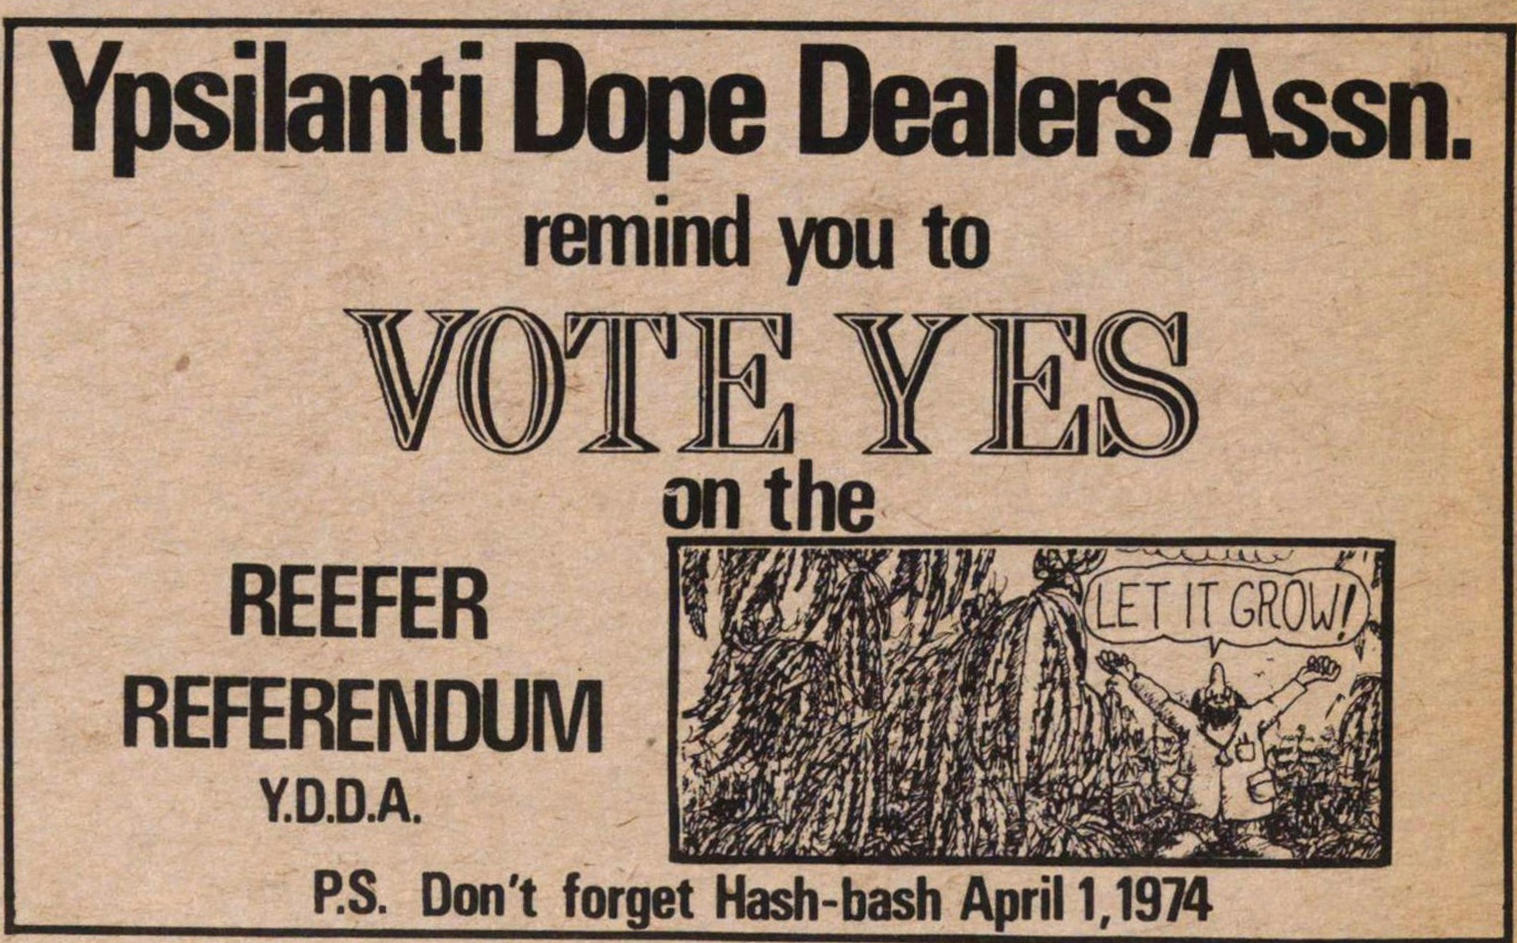 Ypsilanti Dope Dealers Assn. image